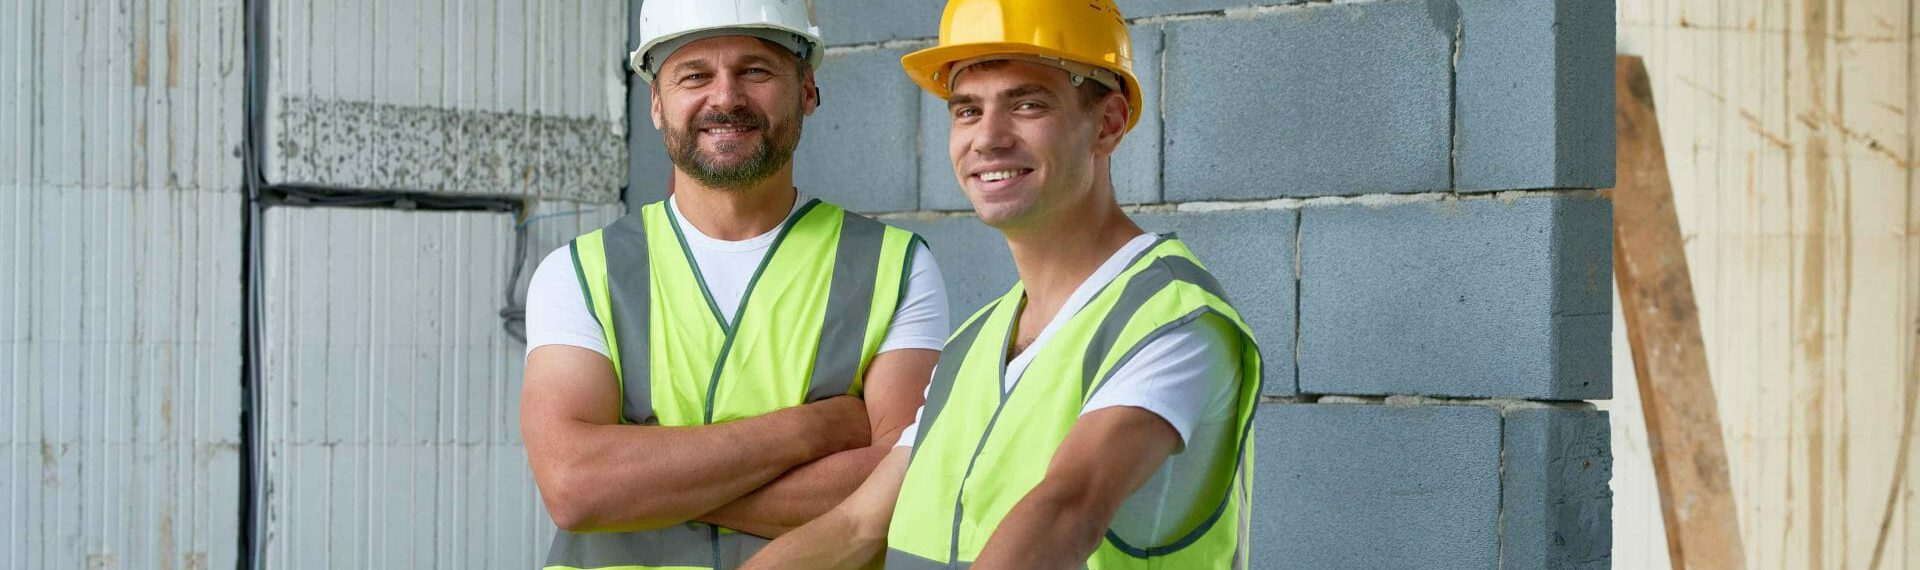 How much does Builder's Insurance cost?